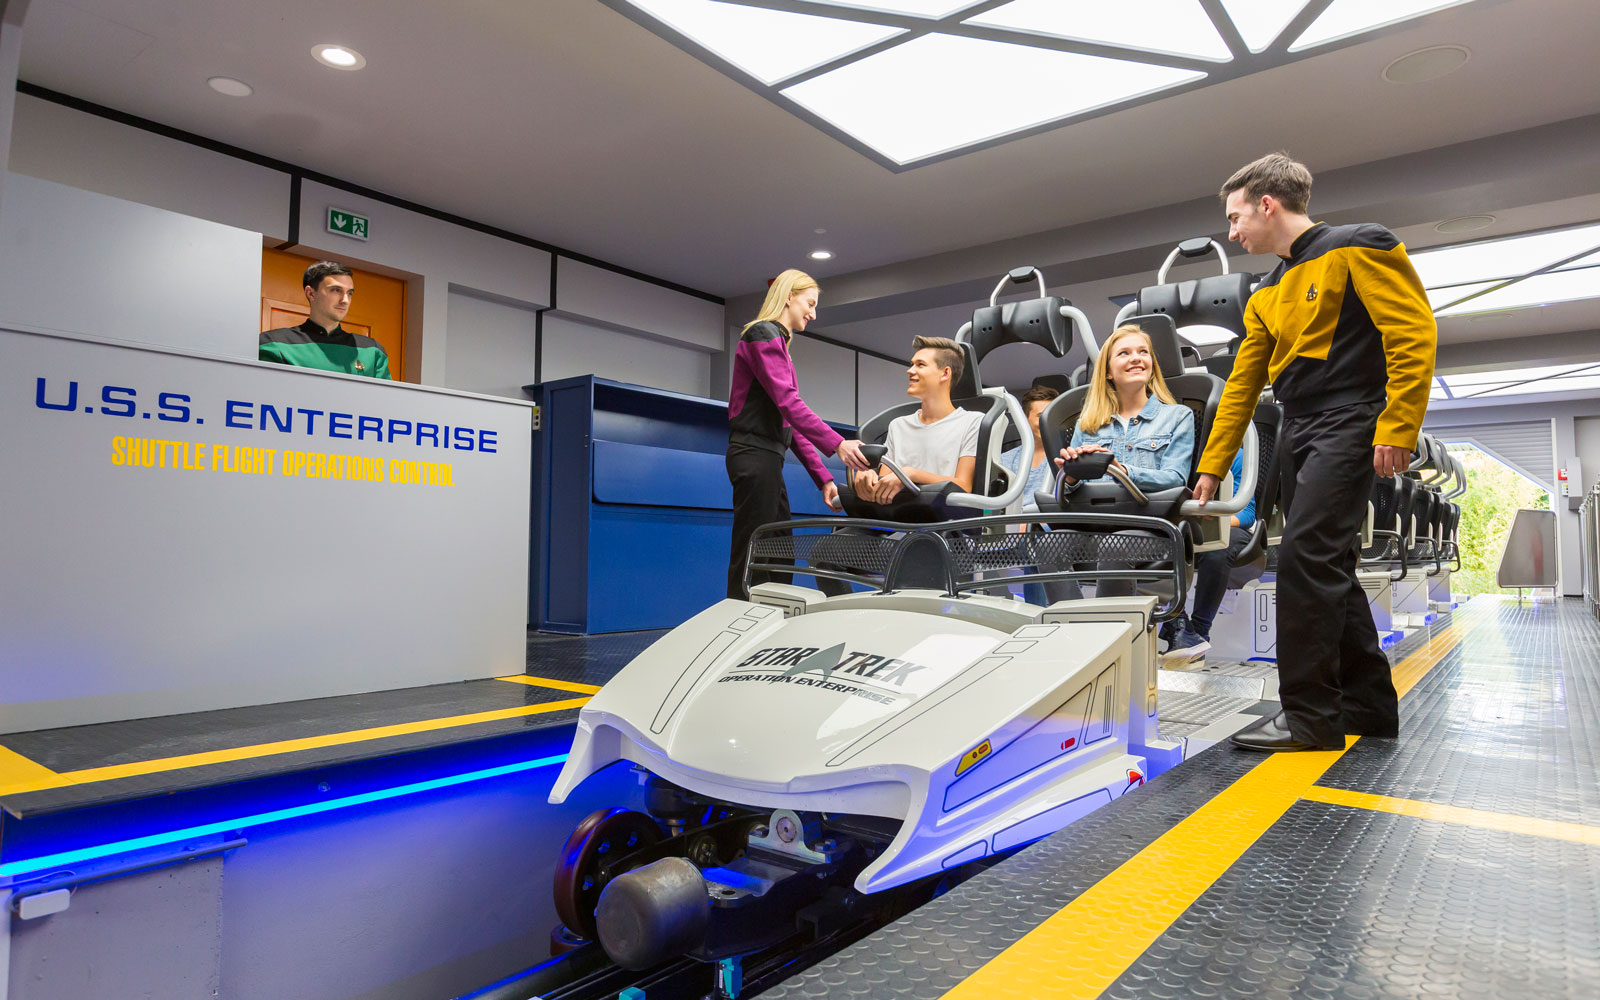 The World's First 'Star Trek' Roller Coaster Is Here